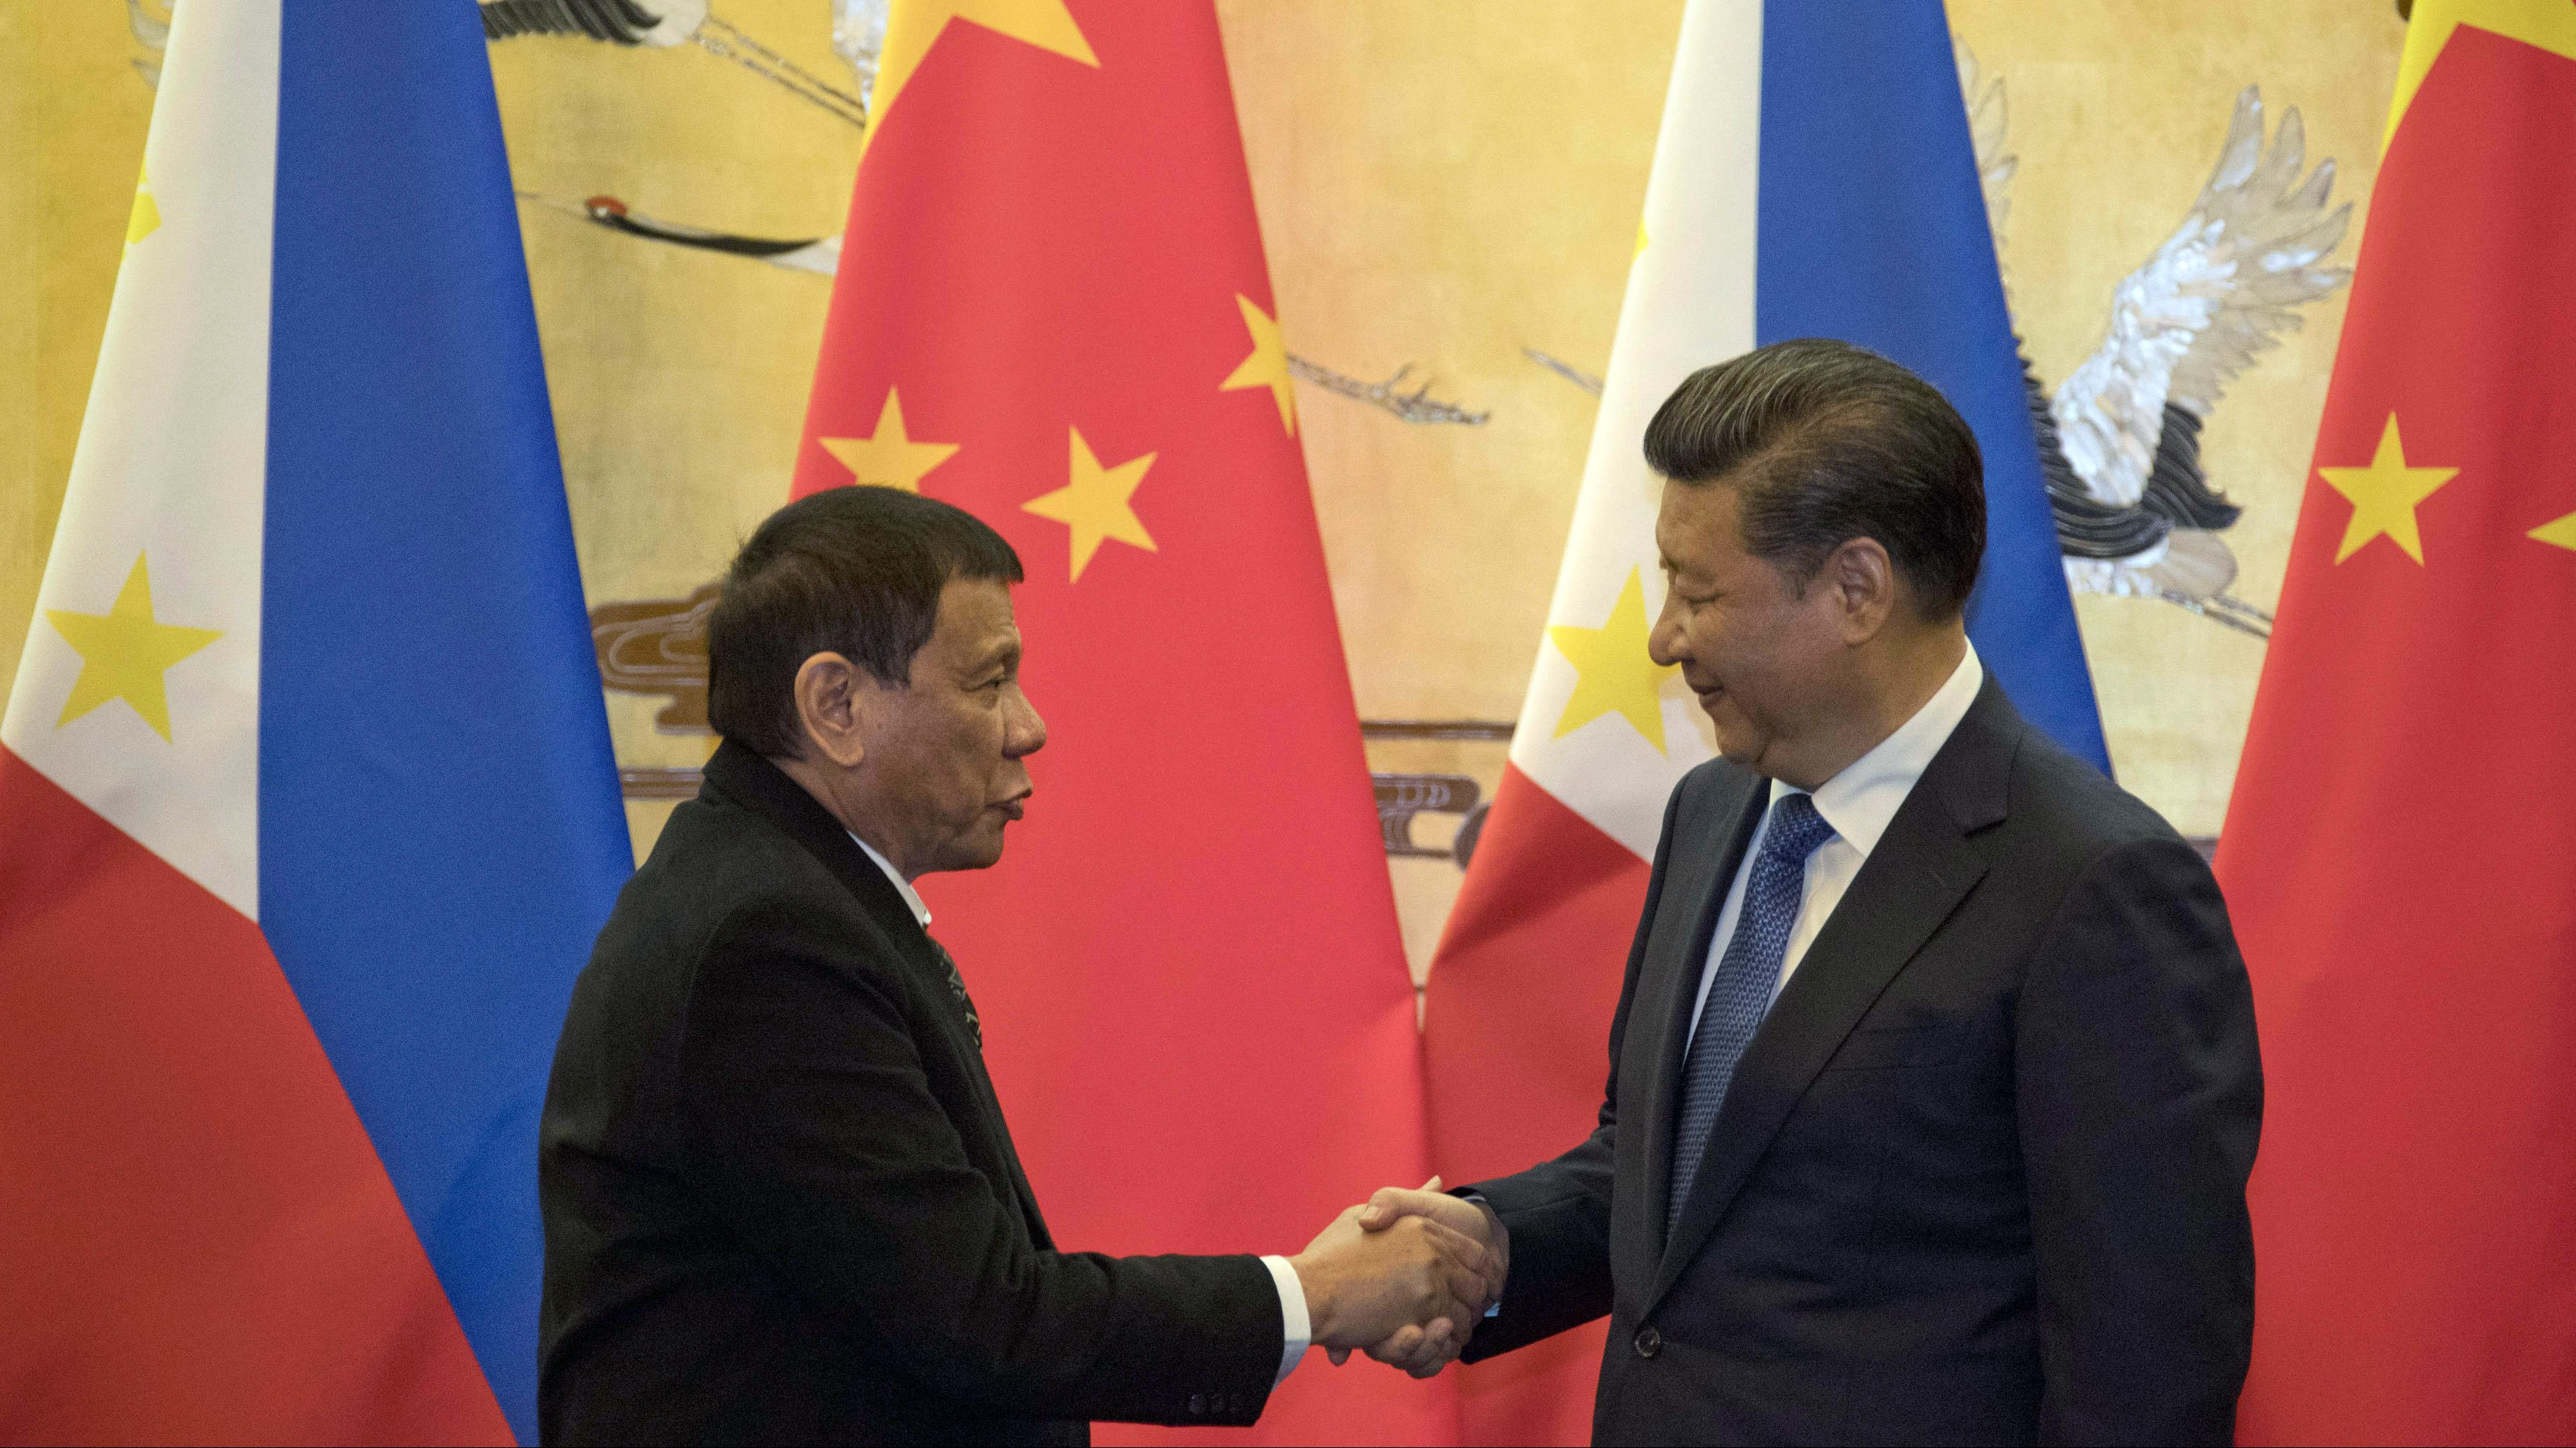 Philippine President Rodrigo Duterte, left, and Chinese President Xi Jinping shake hands after a signing ceremony in Beijing, China.